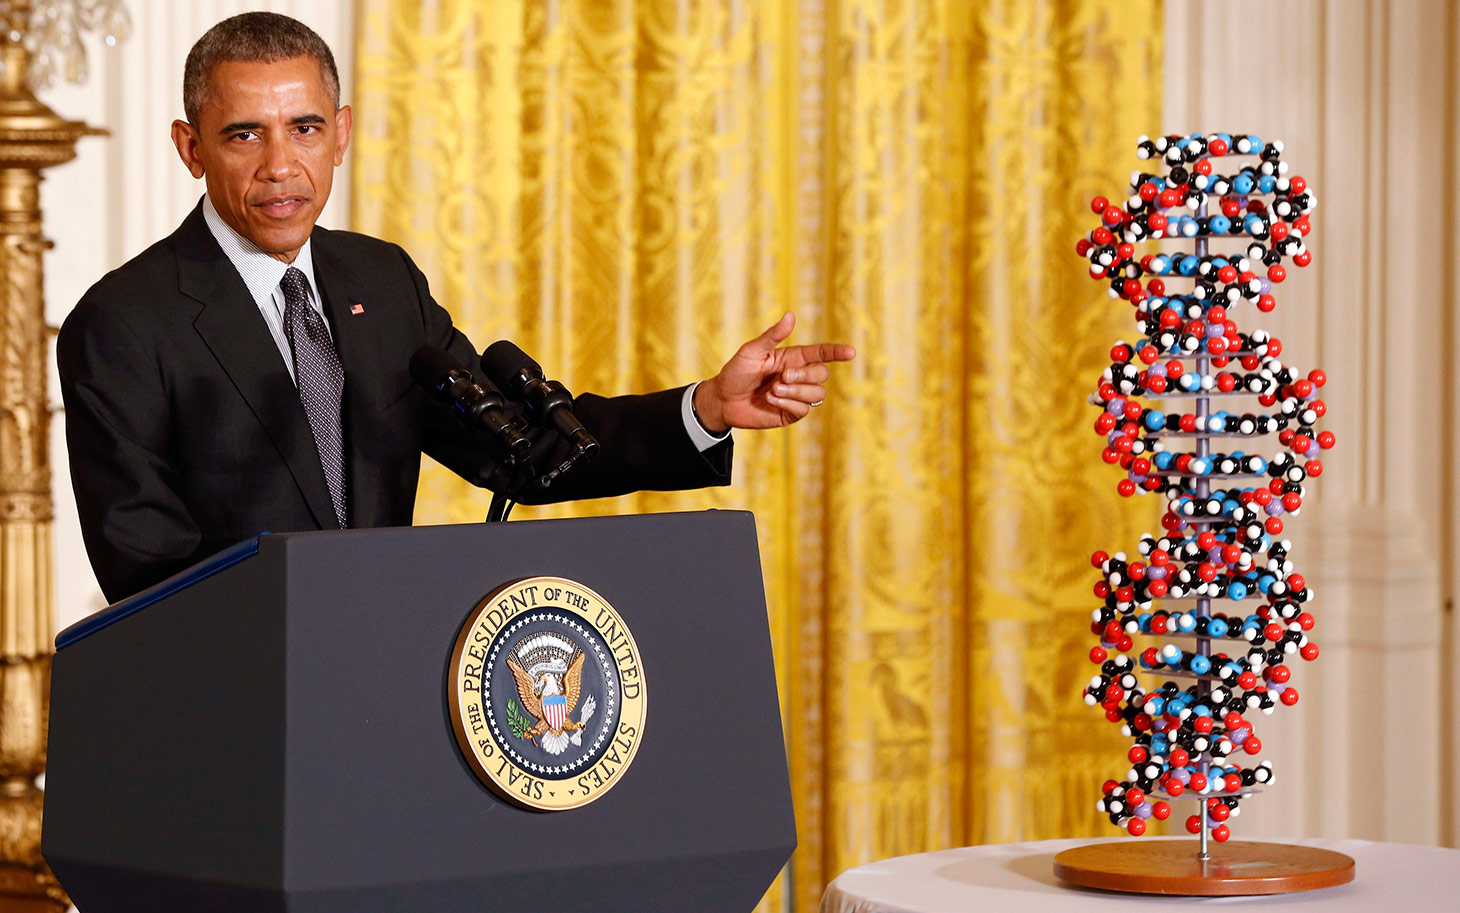 Obama makes remarks highlighting investments to improve health and treat disease through precision medicine while in the East Room of the White House in Washington